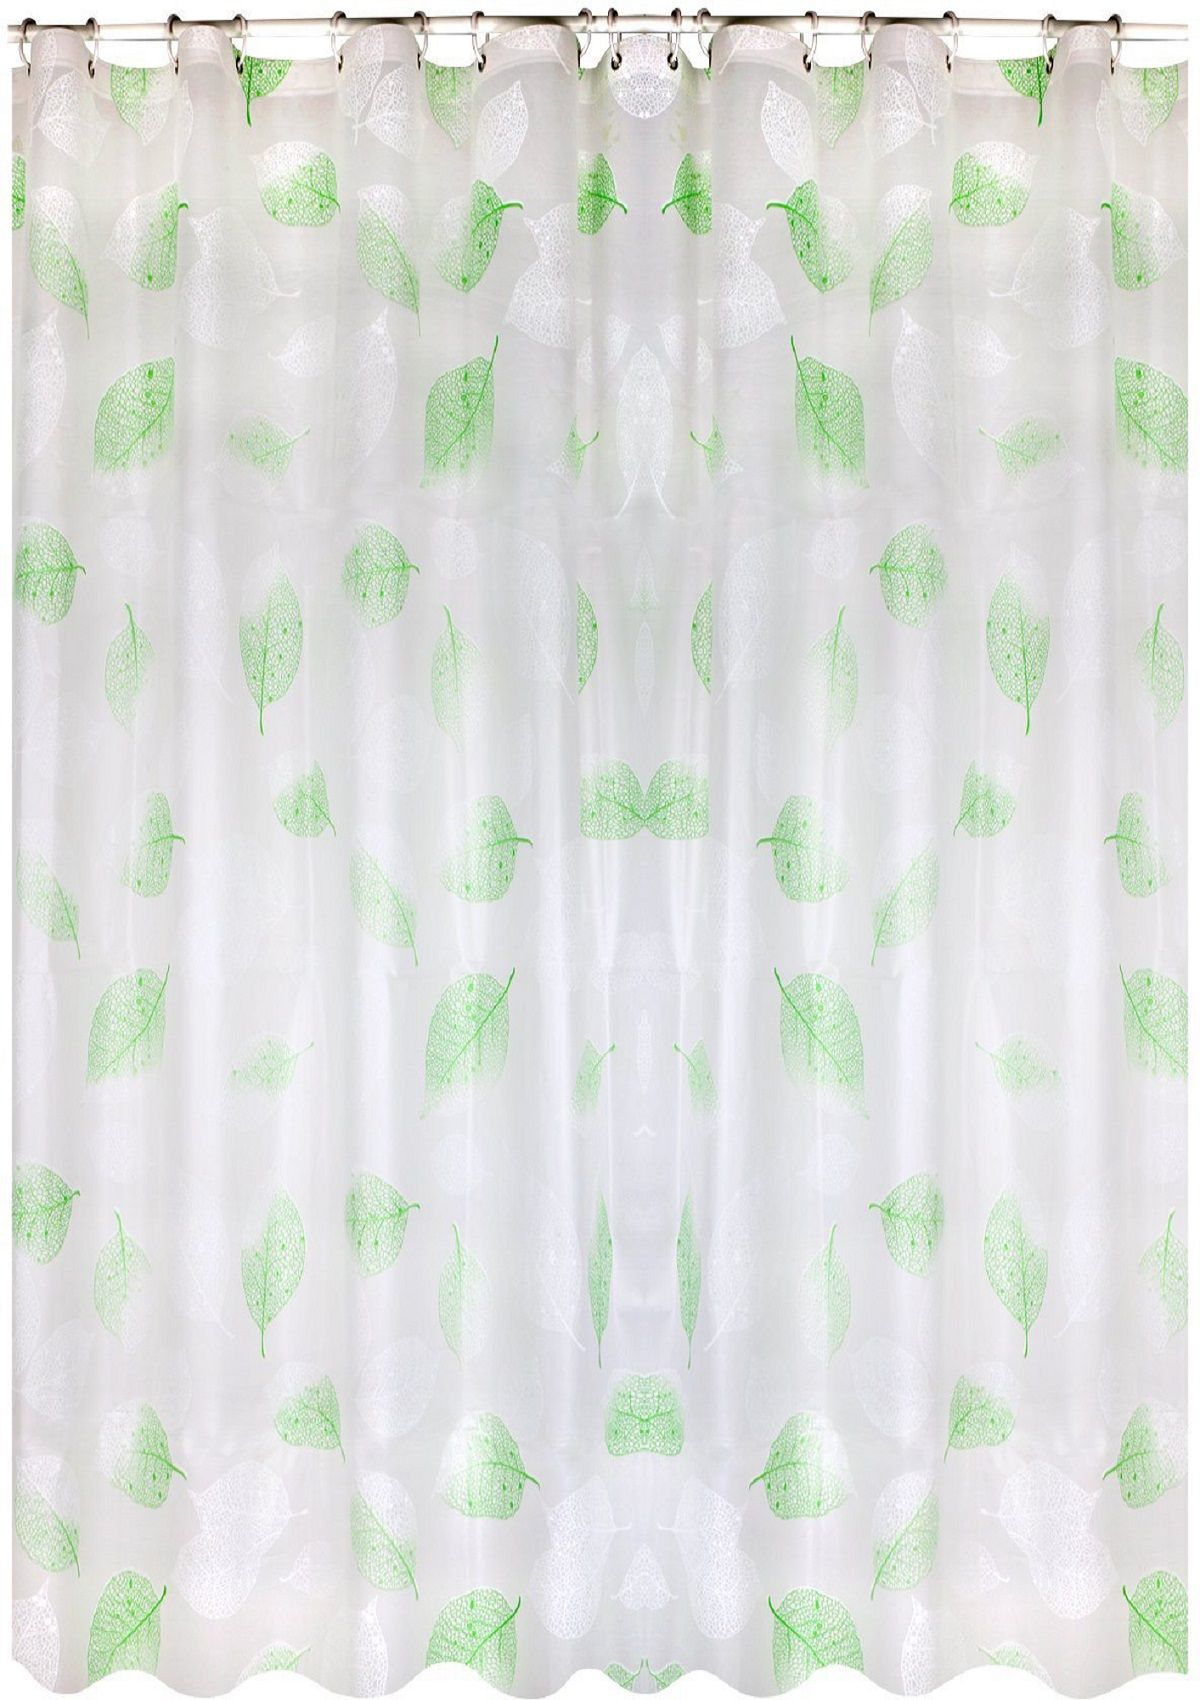 Wimaha Leaves Plastic Peva Shower Curtain Liner Clear Mildew